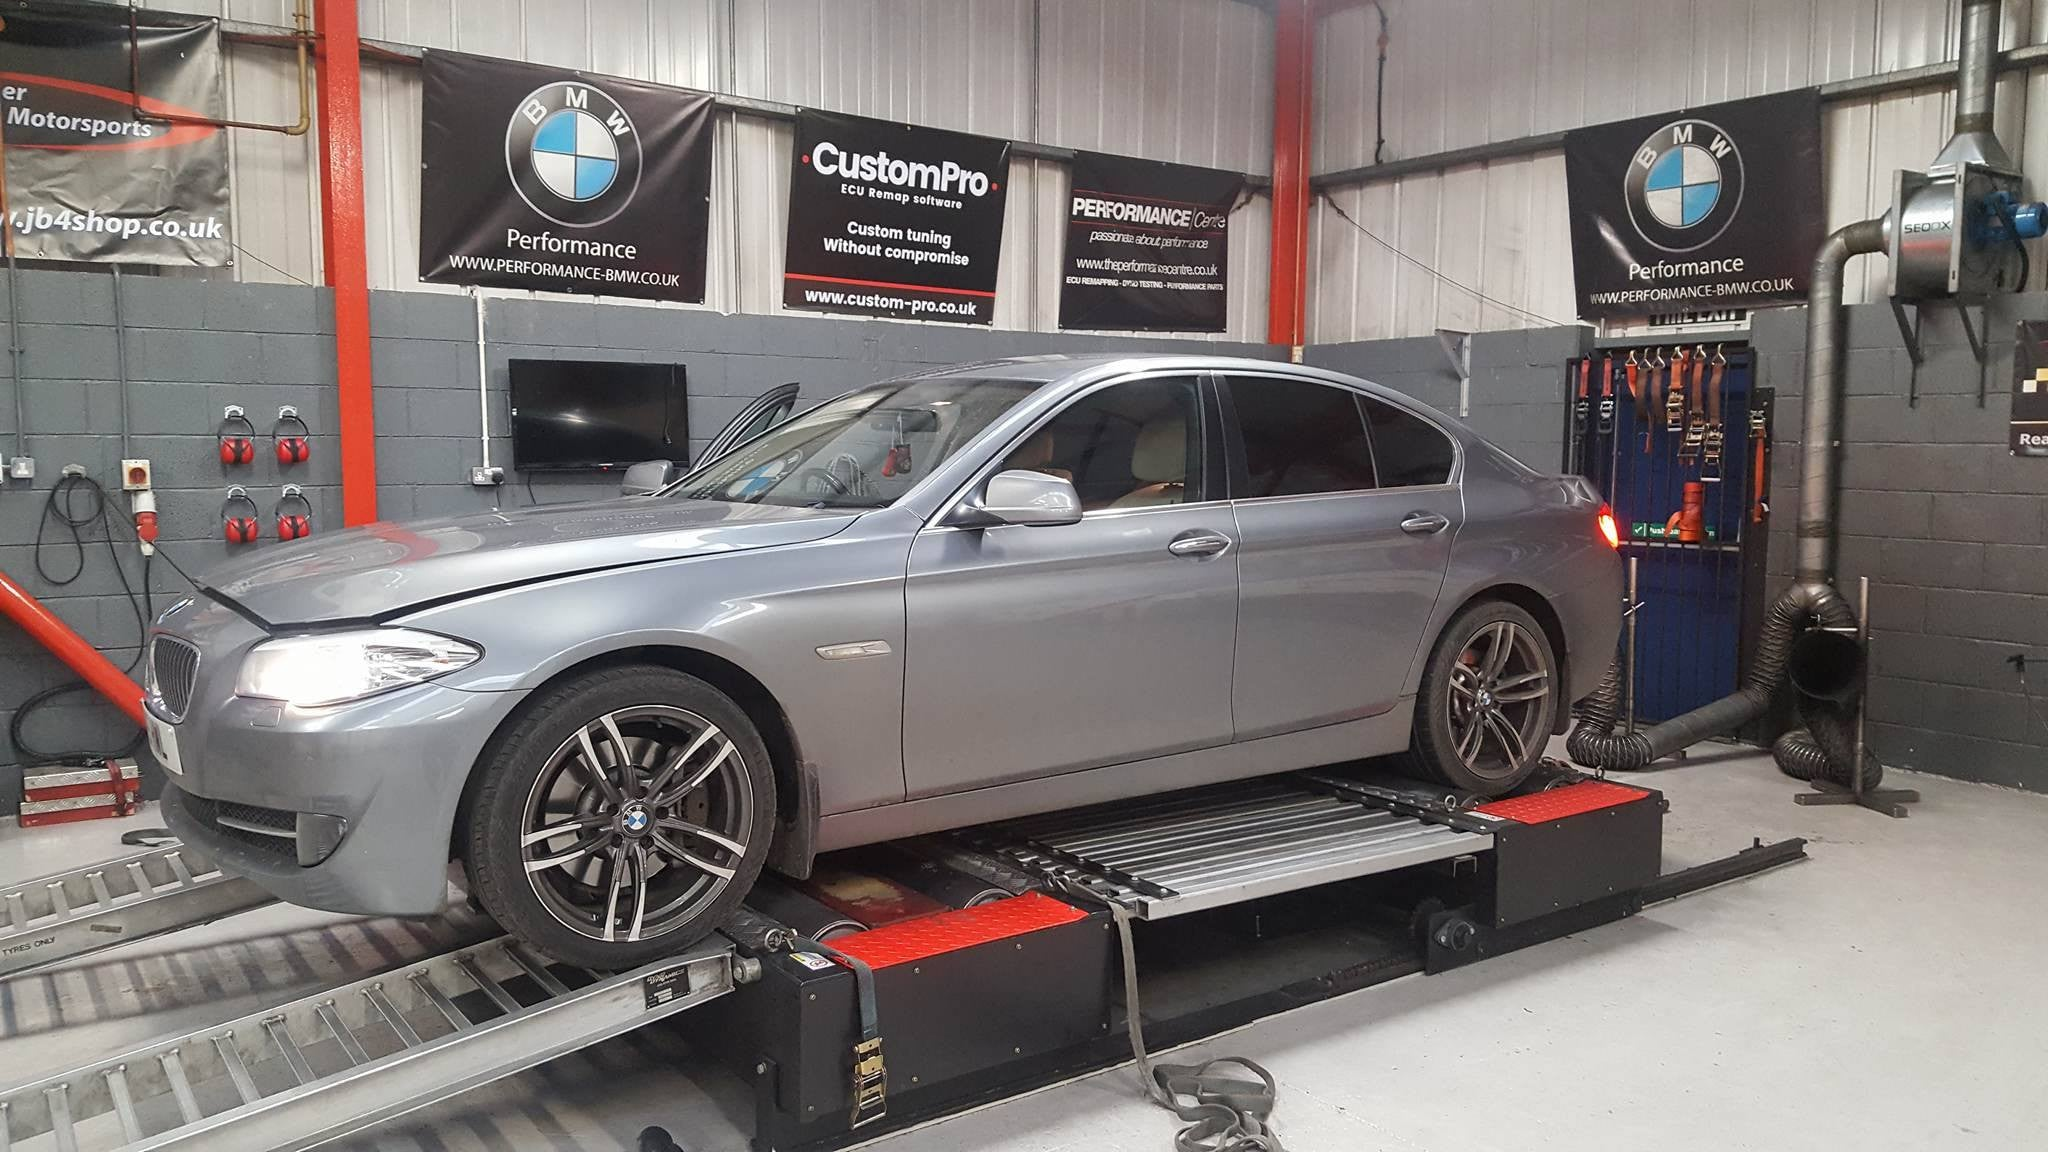 BMW 525D F10 - CustomPro remap